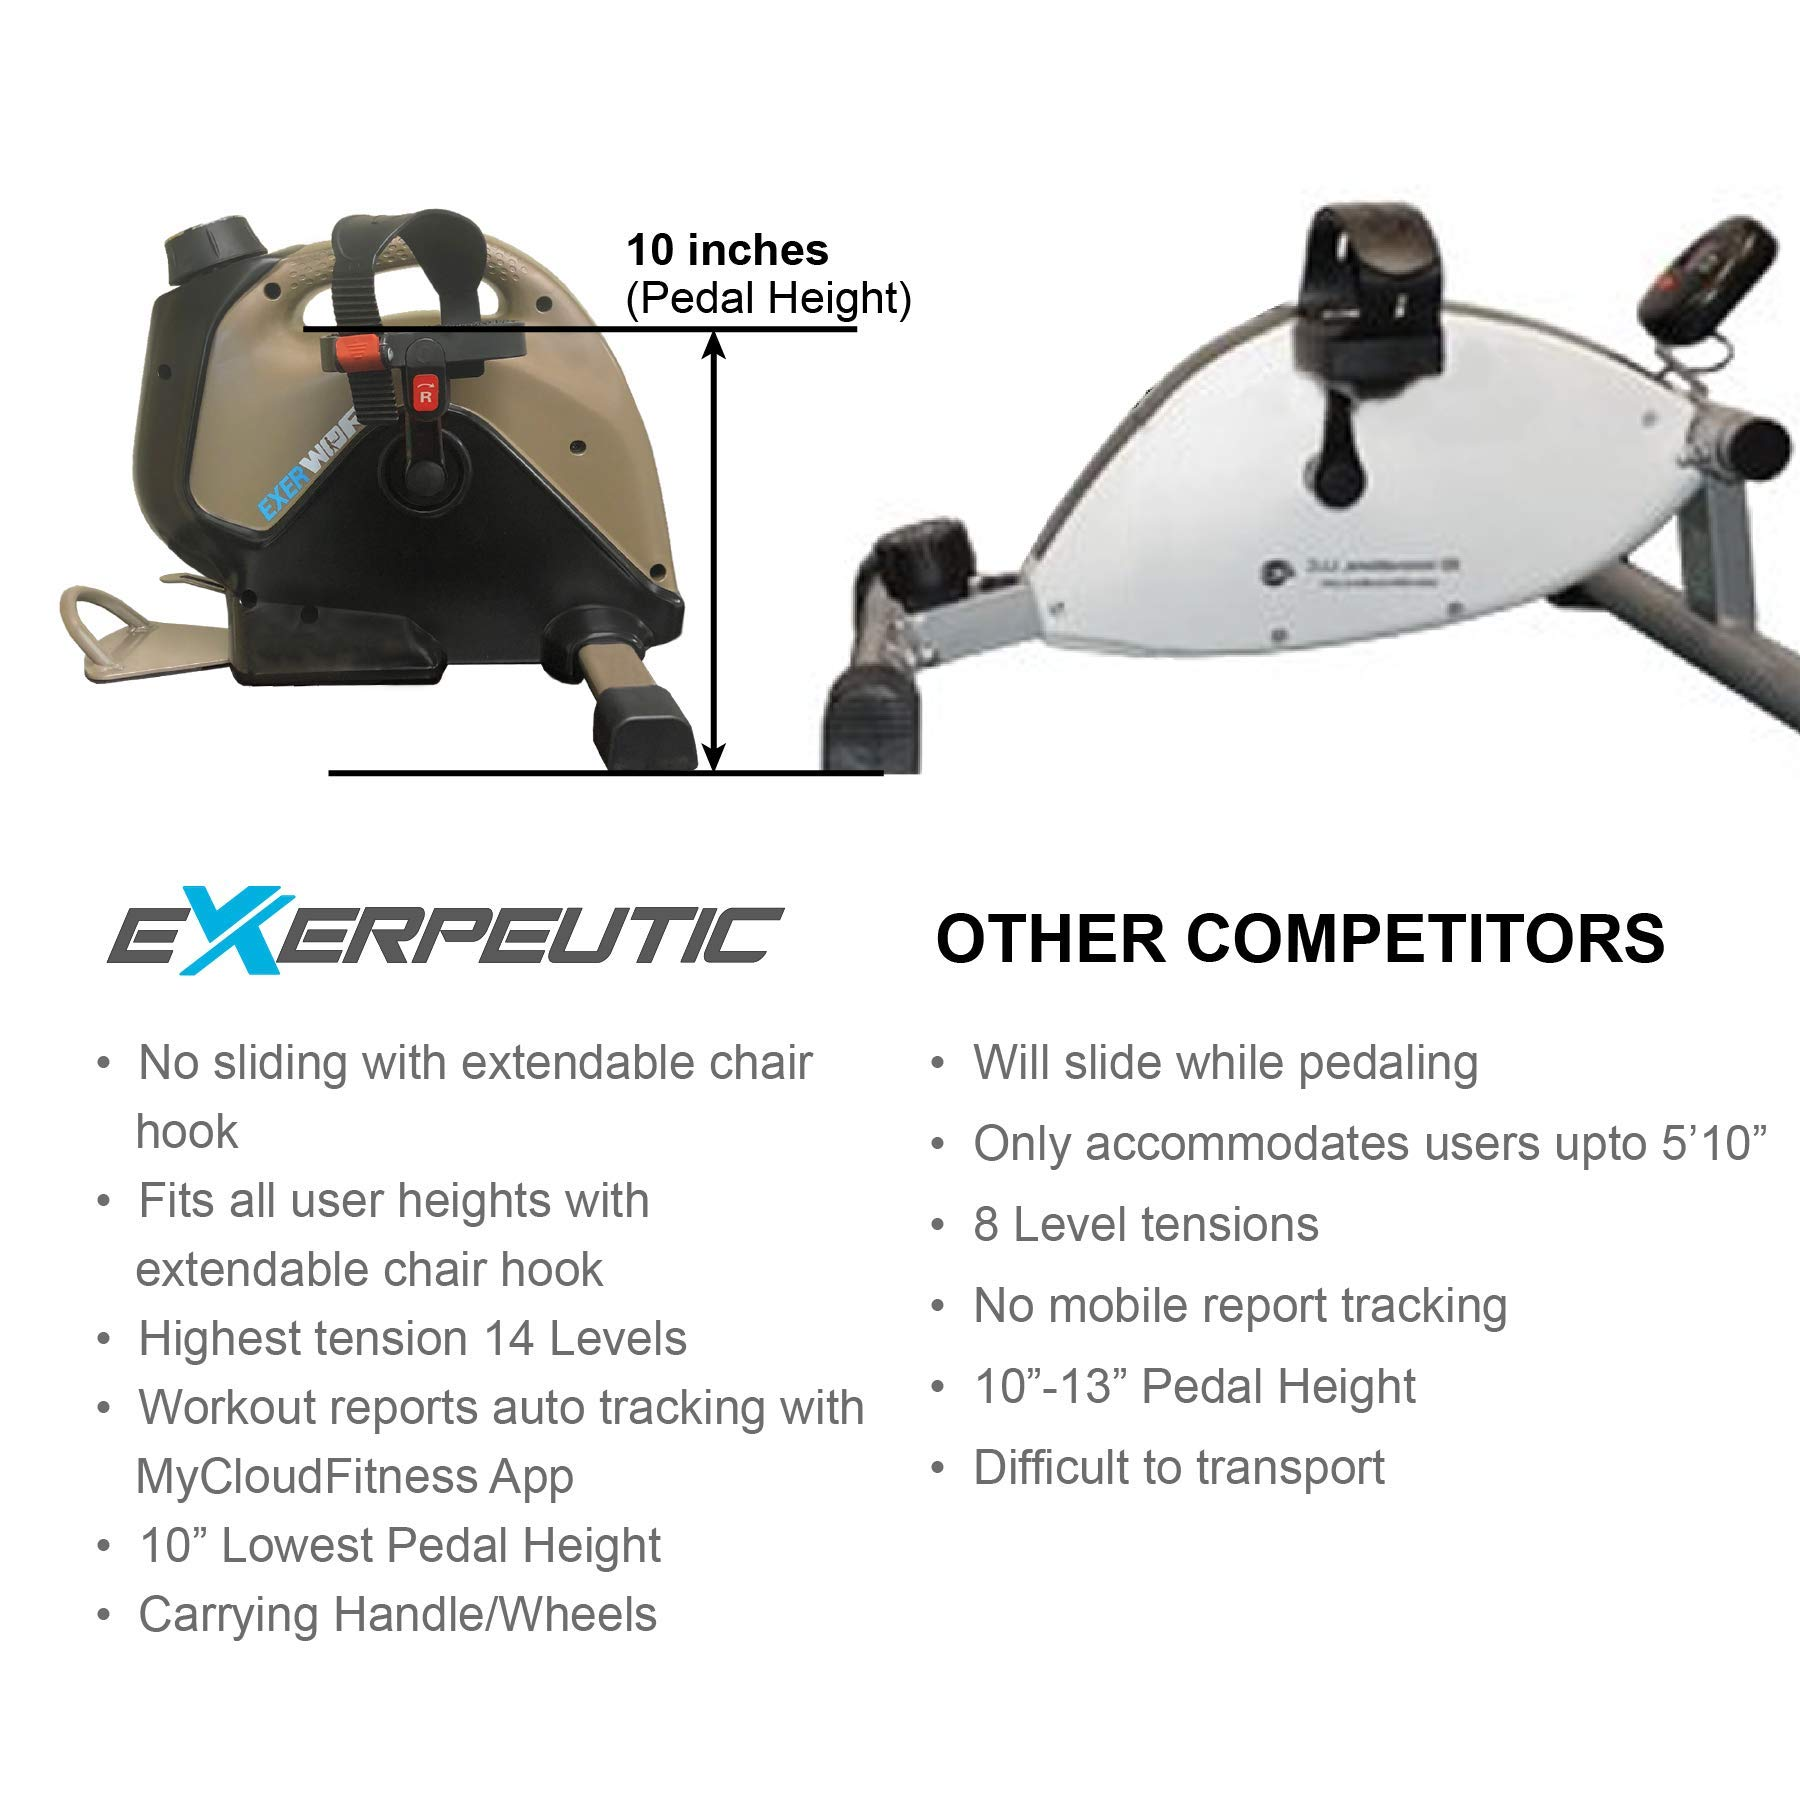 Exerpeutic 900 Bluetooth Under Desk Exercise Bike with Extendable Chair Hook for All User Height and Free APP by Exerpeutic (Image #3)